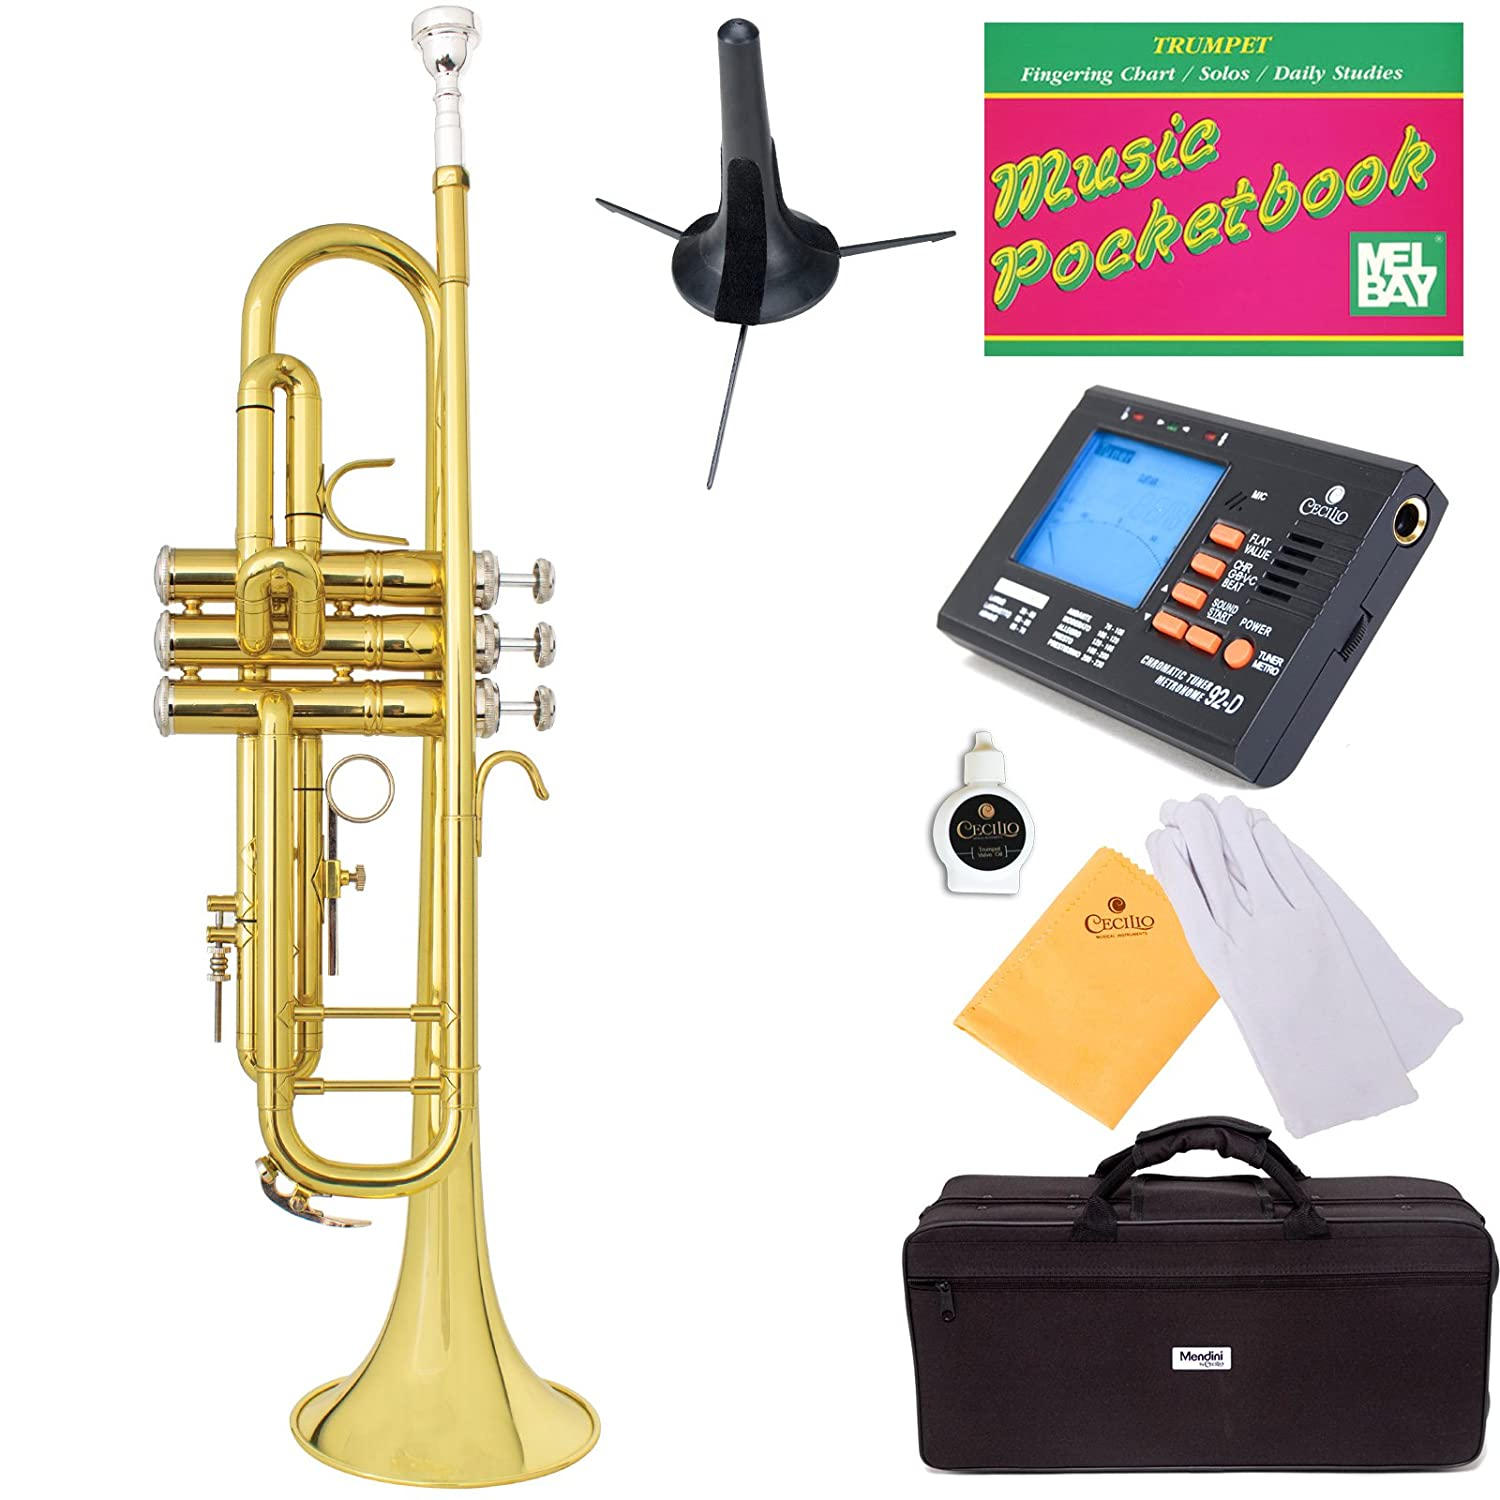 Mendini Double-Braced B-Flat Trumpet with Monel Valves, Yellow Brass + Tuner, Case, Stand, Pocketbook - MTT-30L+SD+PB+92D Cecilio Musical Instruments